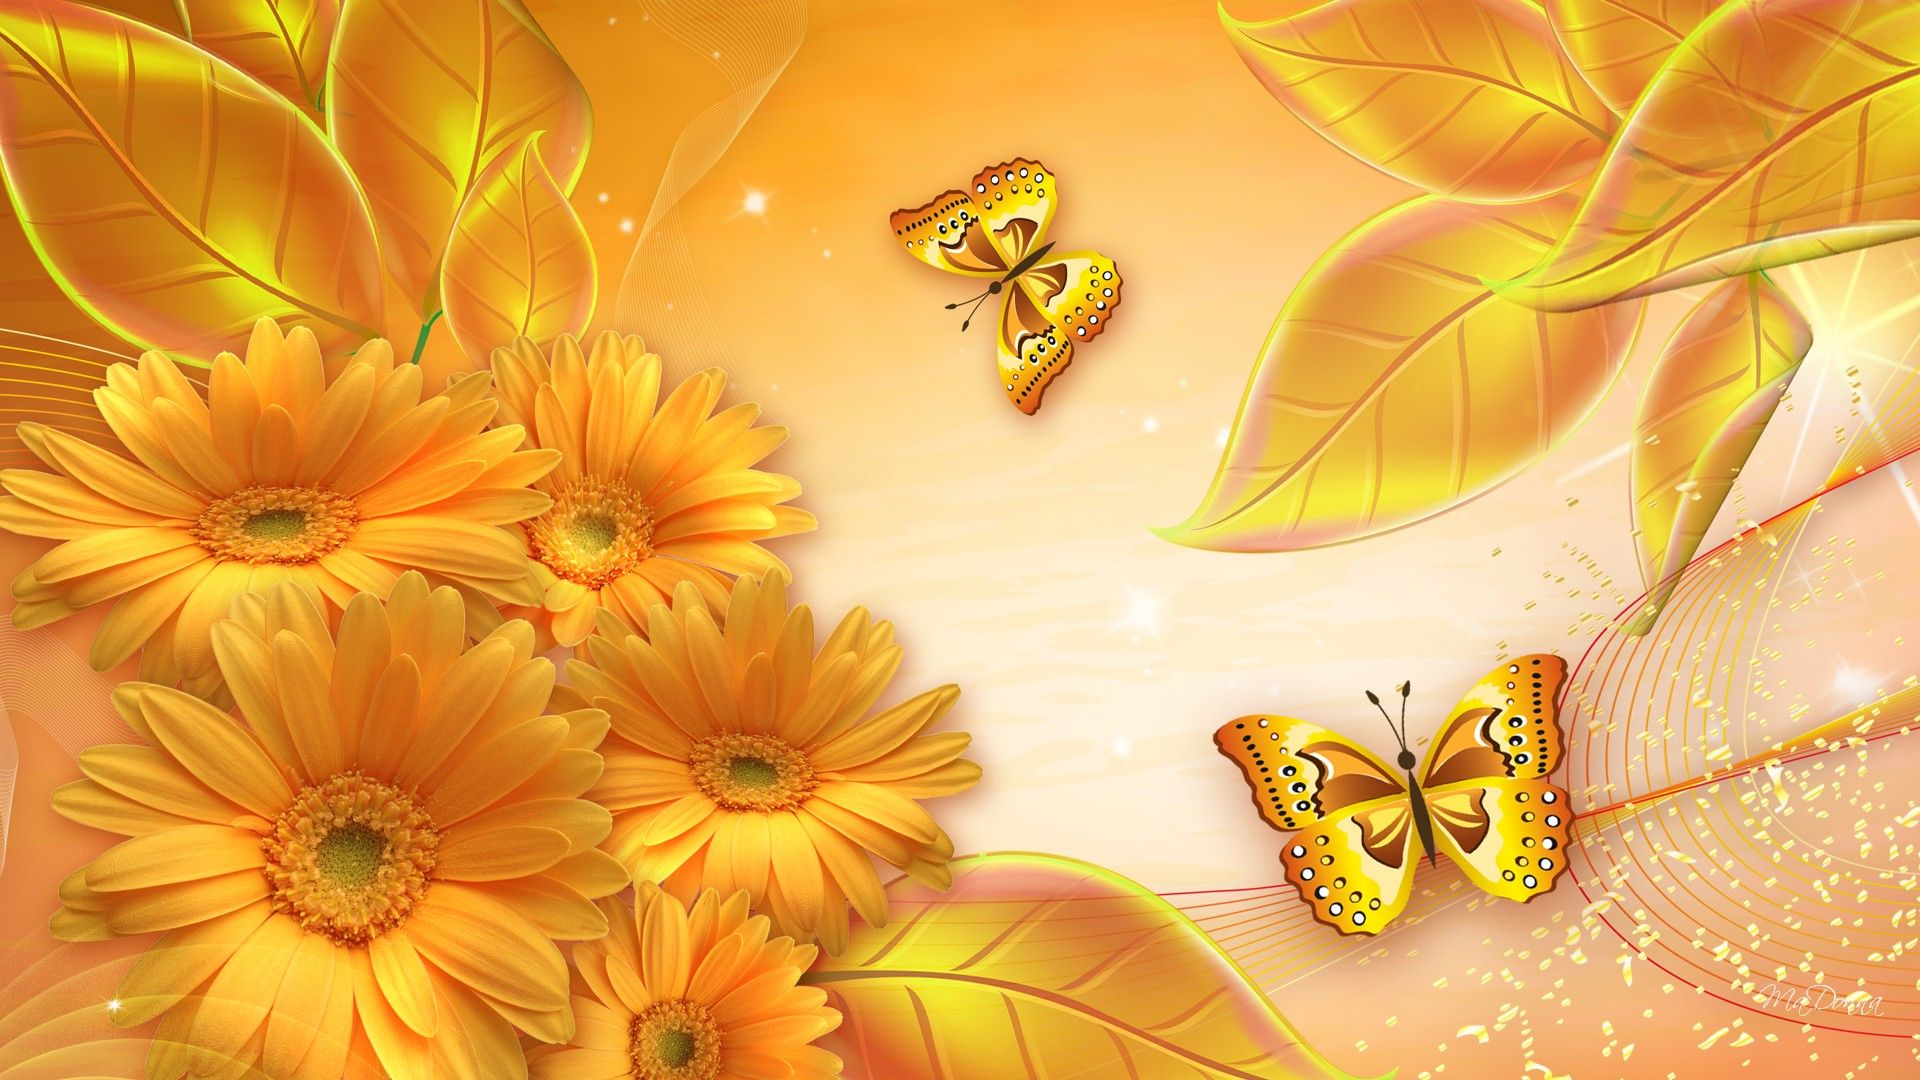 1920x1080 Free download Flowers Gold Awesome Wallpaper [1920x1080] for ...